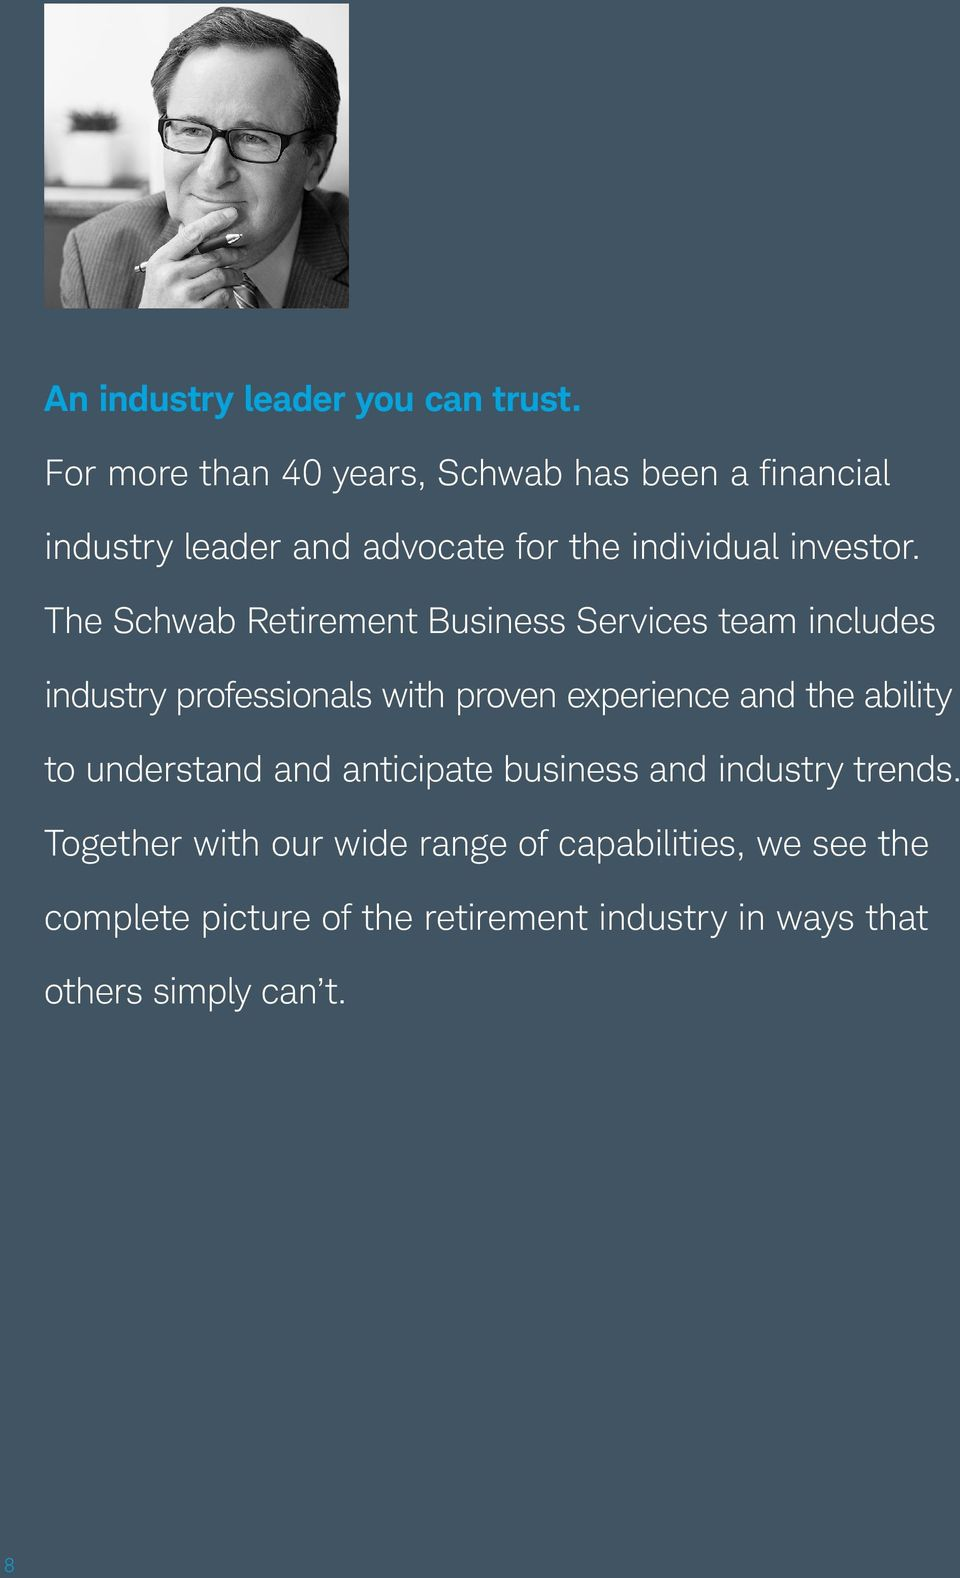 The Schwab Retirement Business Services team includes industry professionals with proven experience and the